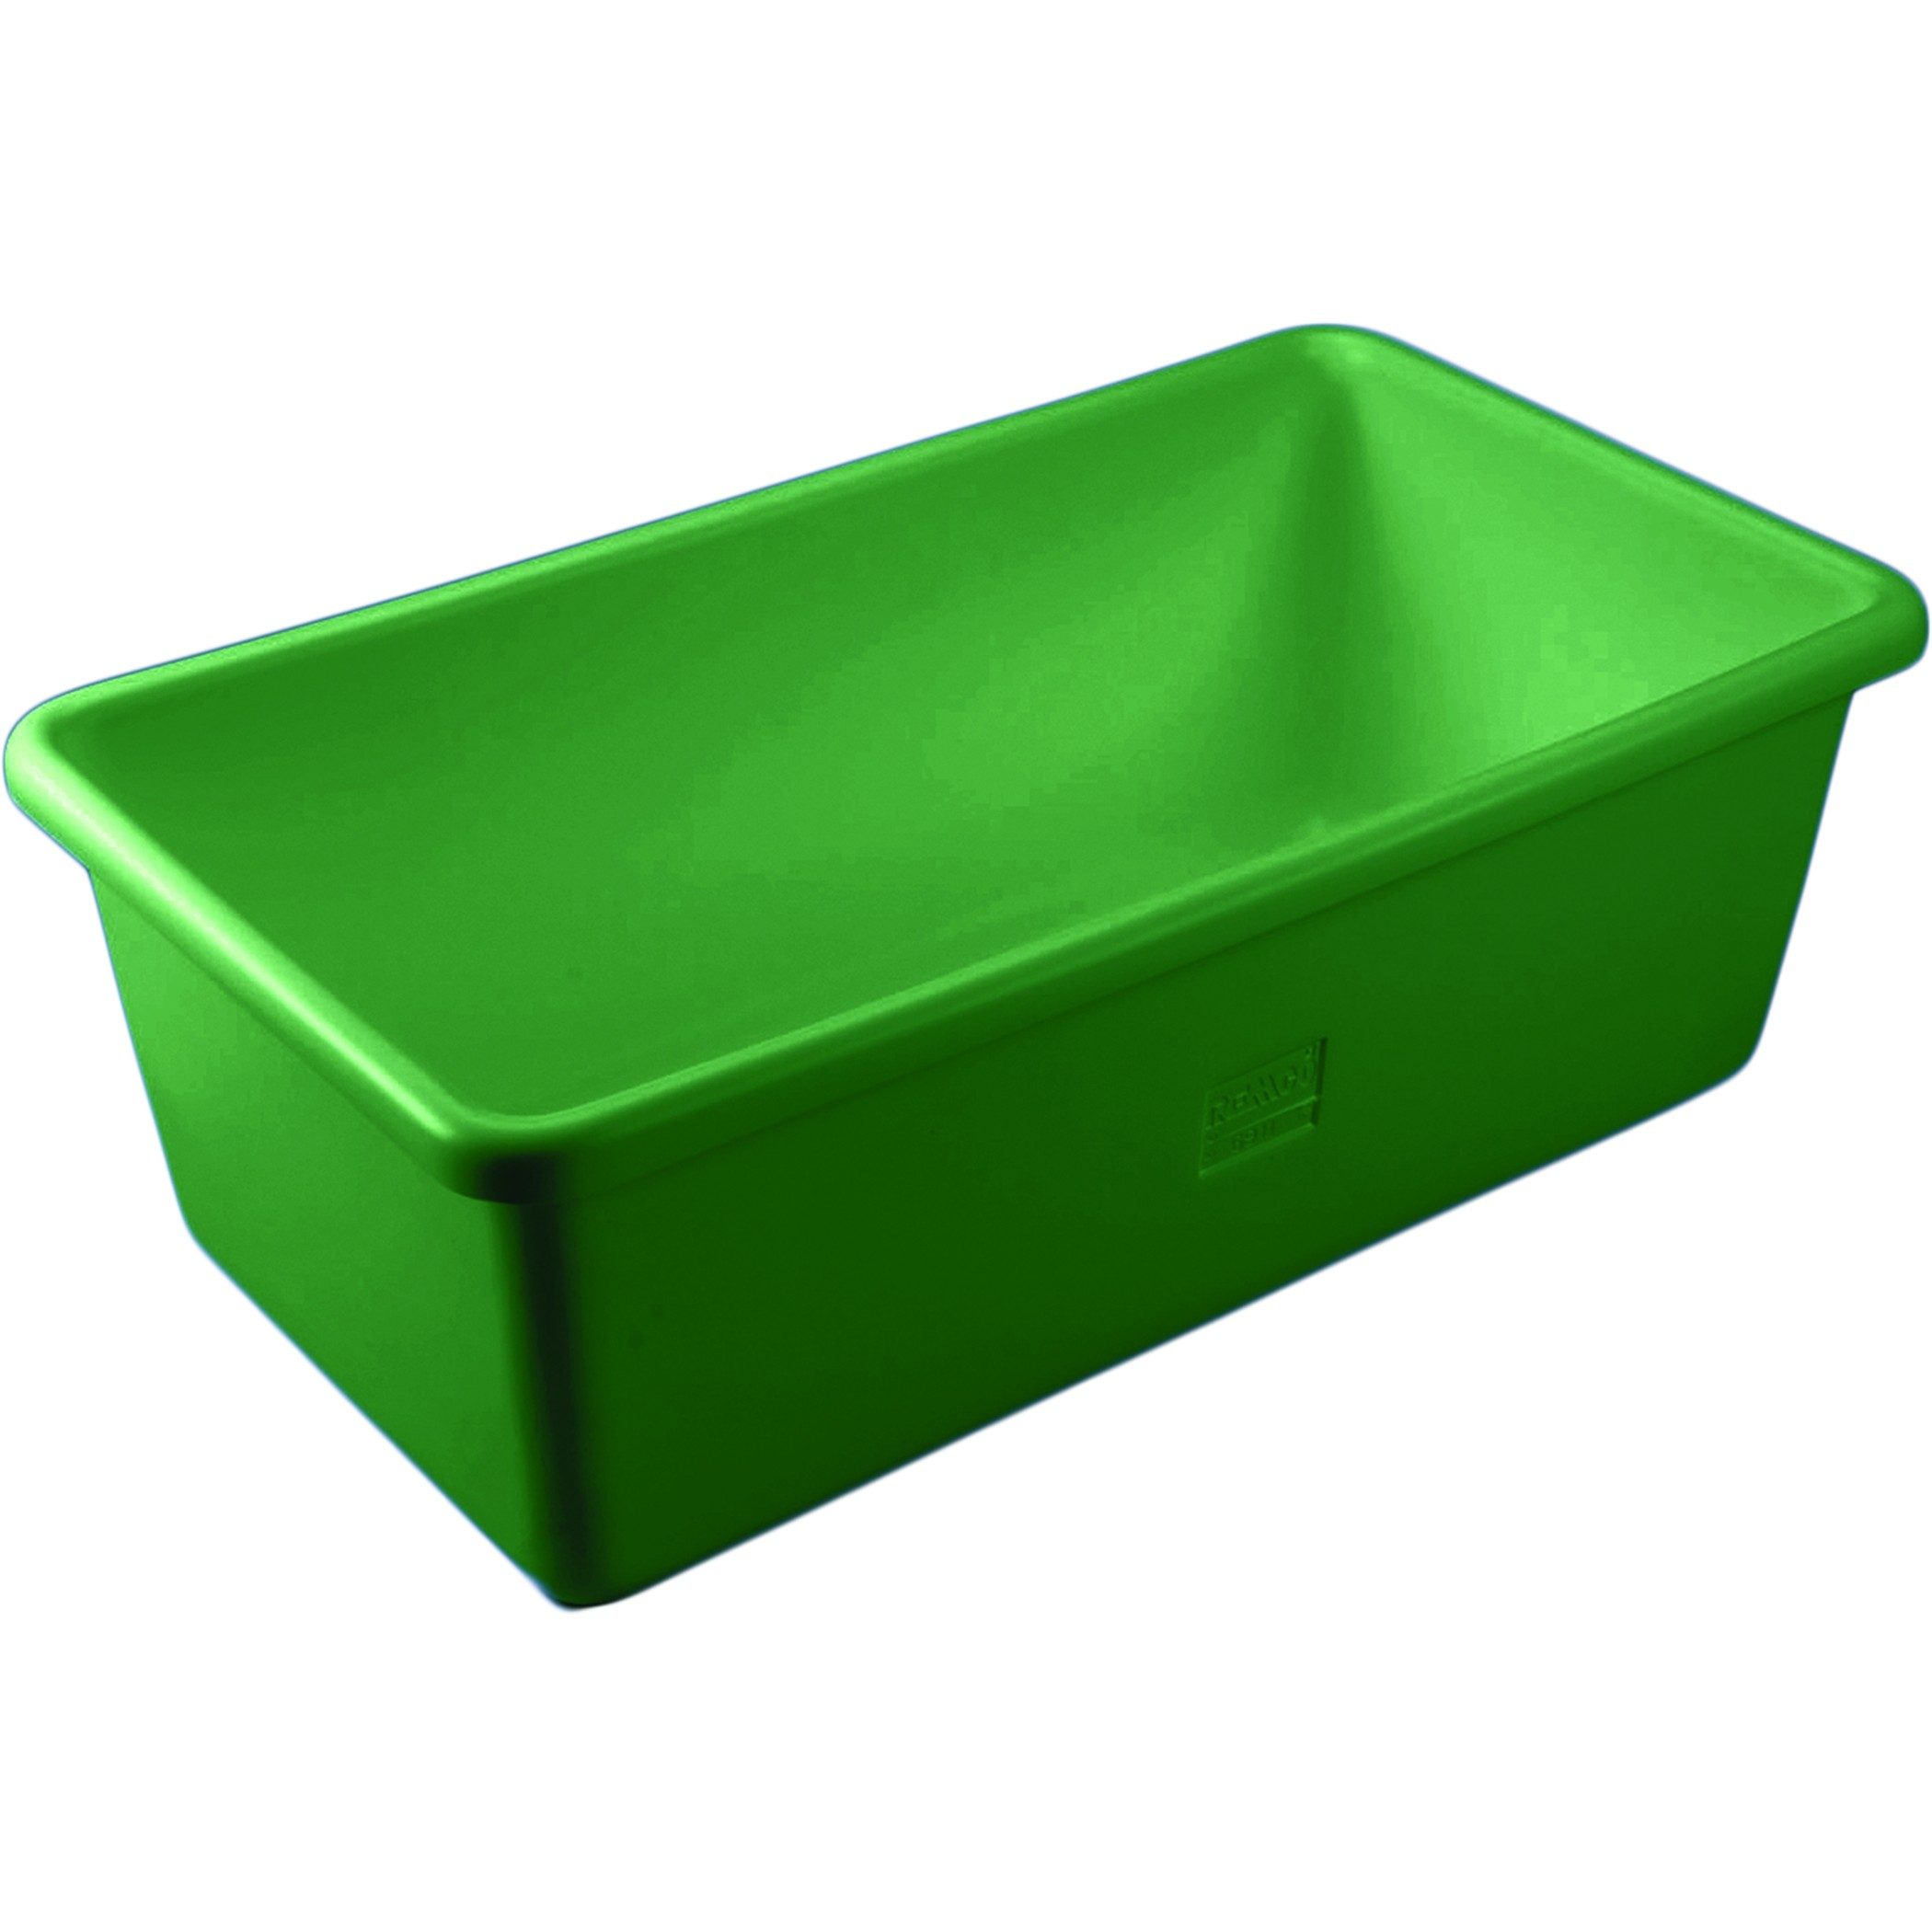 Rectangular Transport Storage Tubs With Or Without Drains   Premium Tubs  Available In White, Blue, Green, Red And Yellow   500 Lbs Capacity |  UltraSource ...